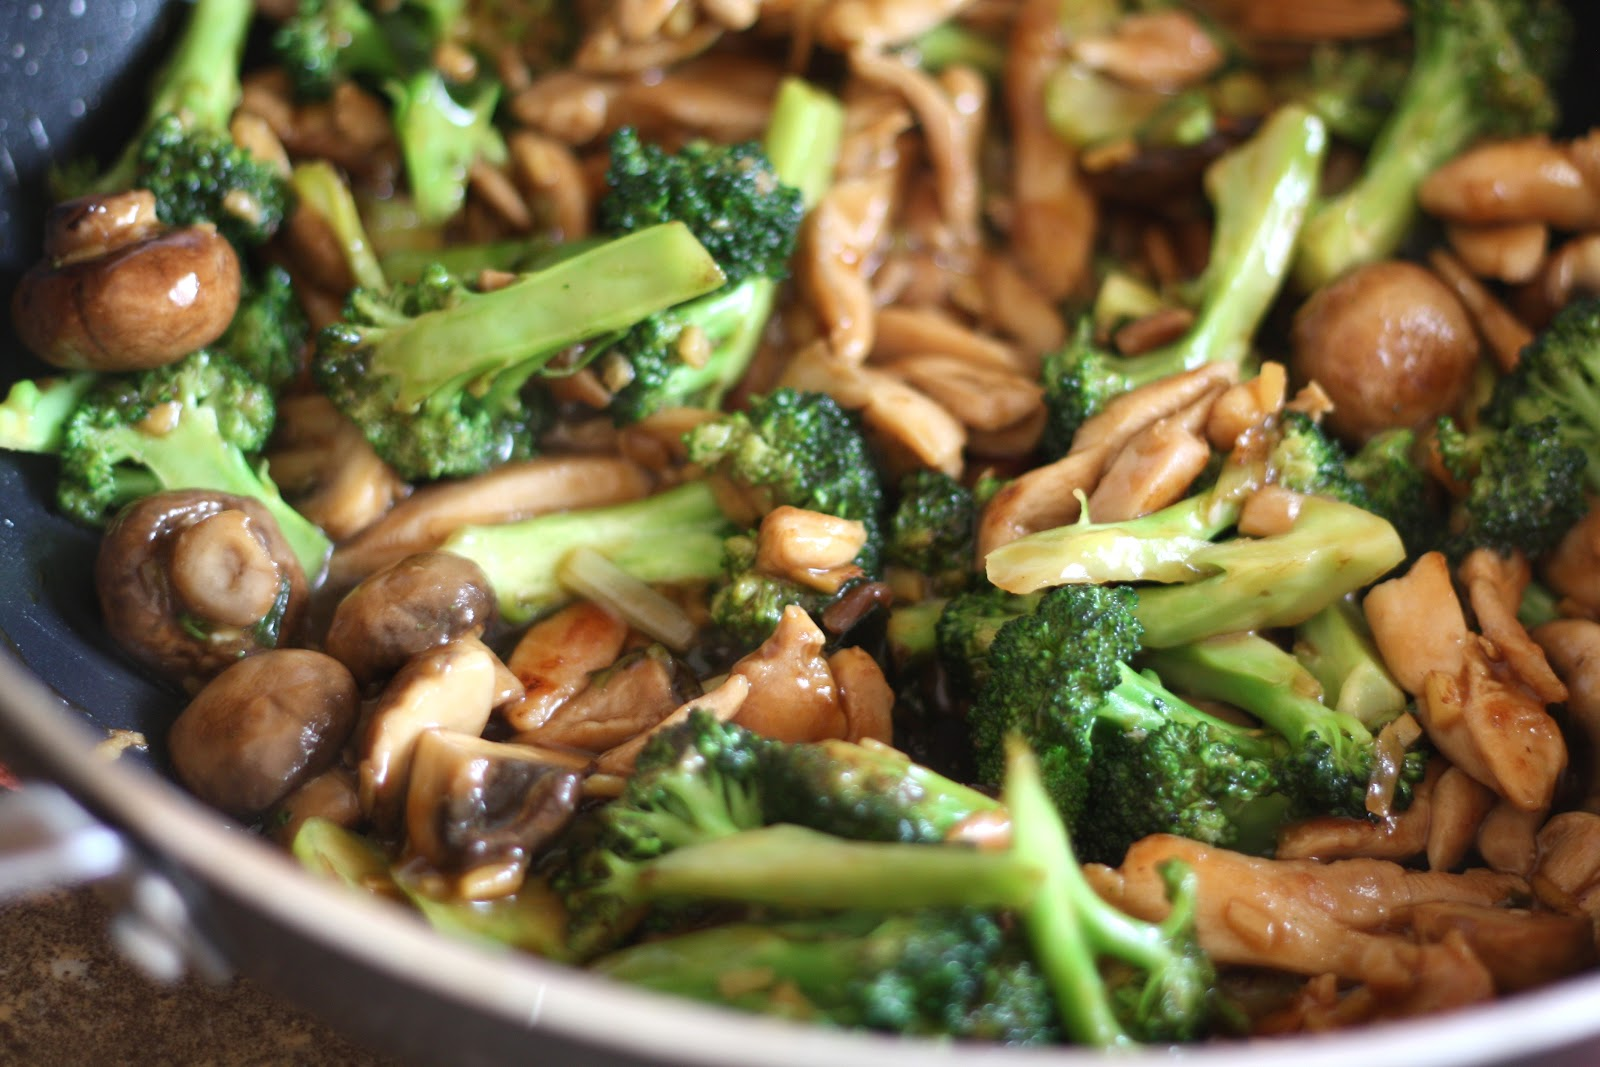 Barefeet In The Kitchen: Ginger Chicken and Broccoli Stir Fry